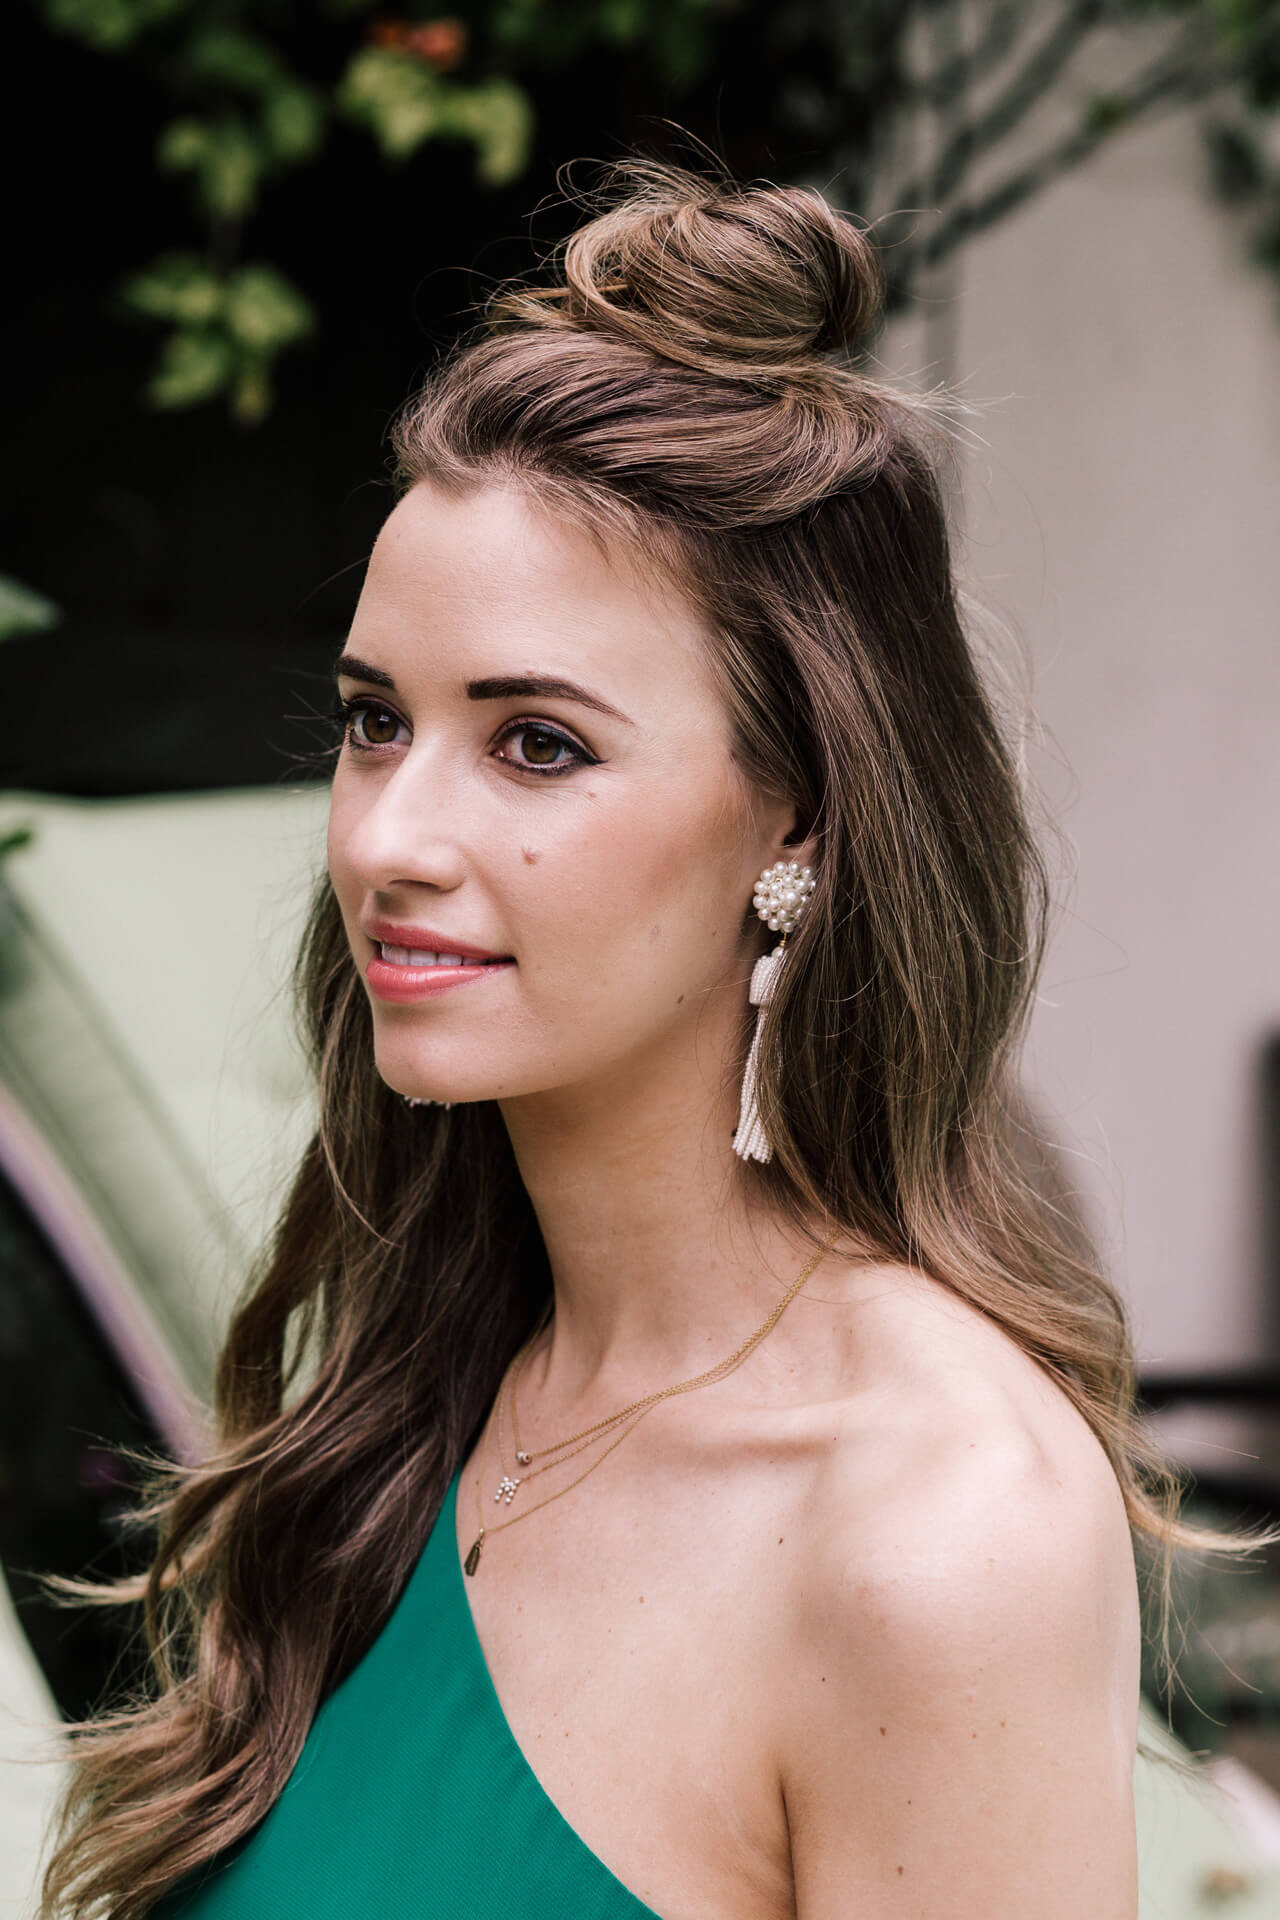 relaxed hair style and makeup for a summer wedding- M Loves M @marmar